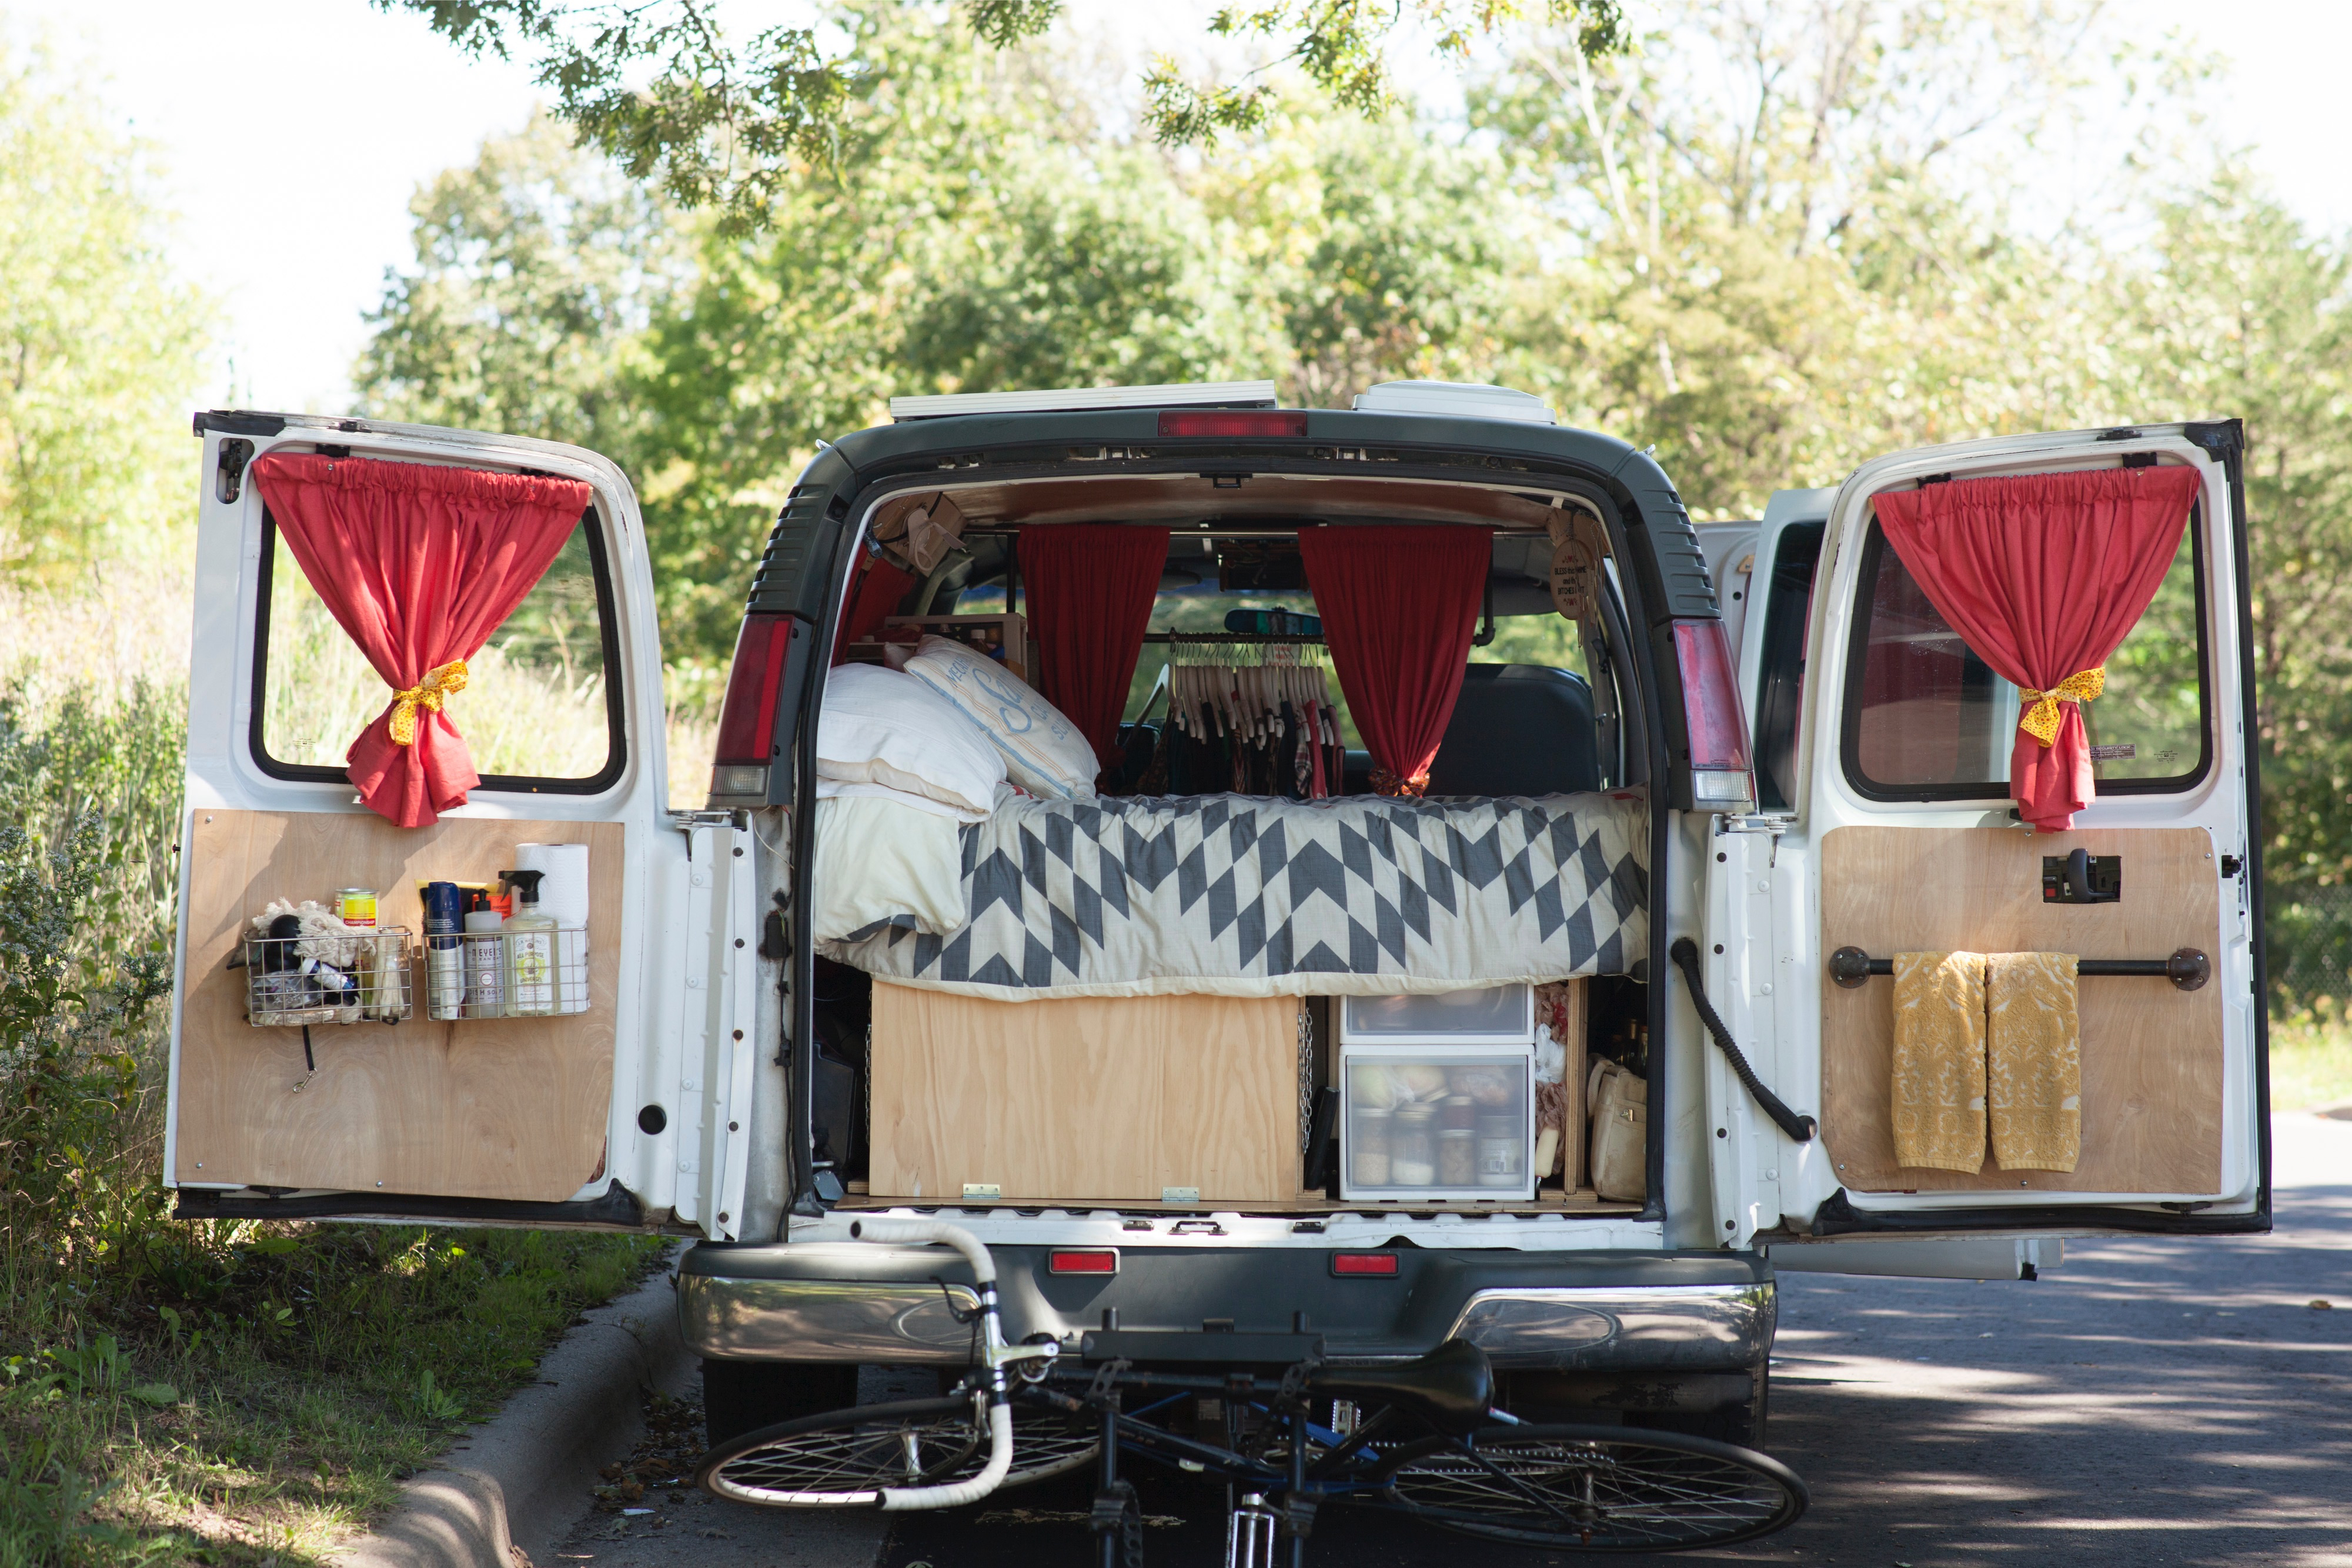 Choosing the right overland vehicle – STEPSOVER